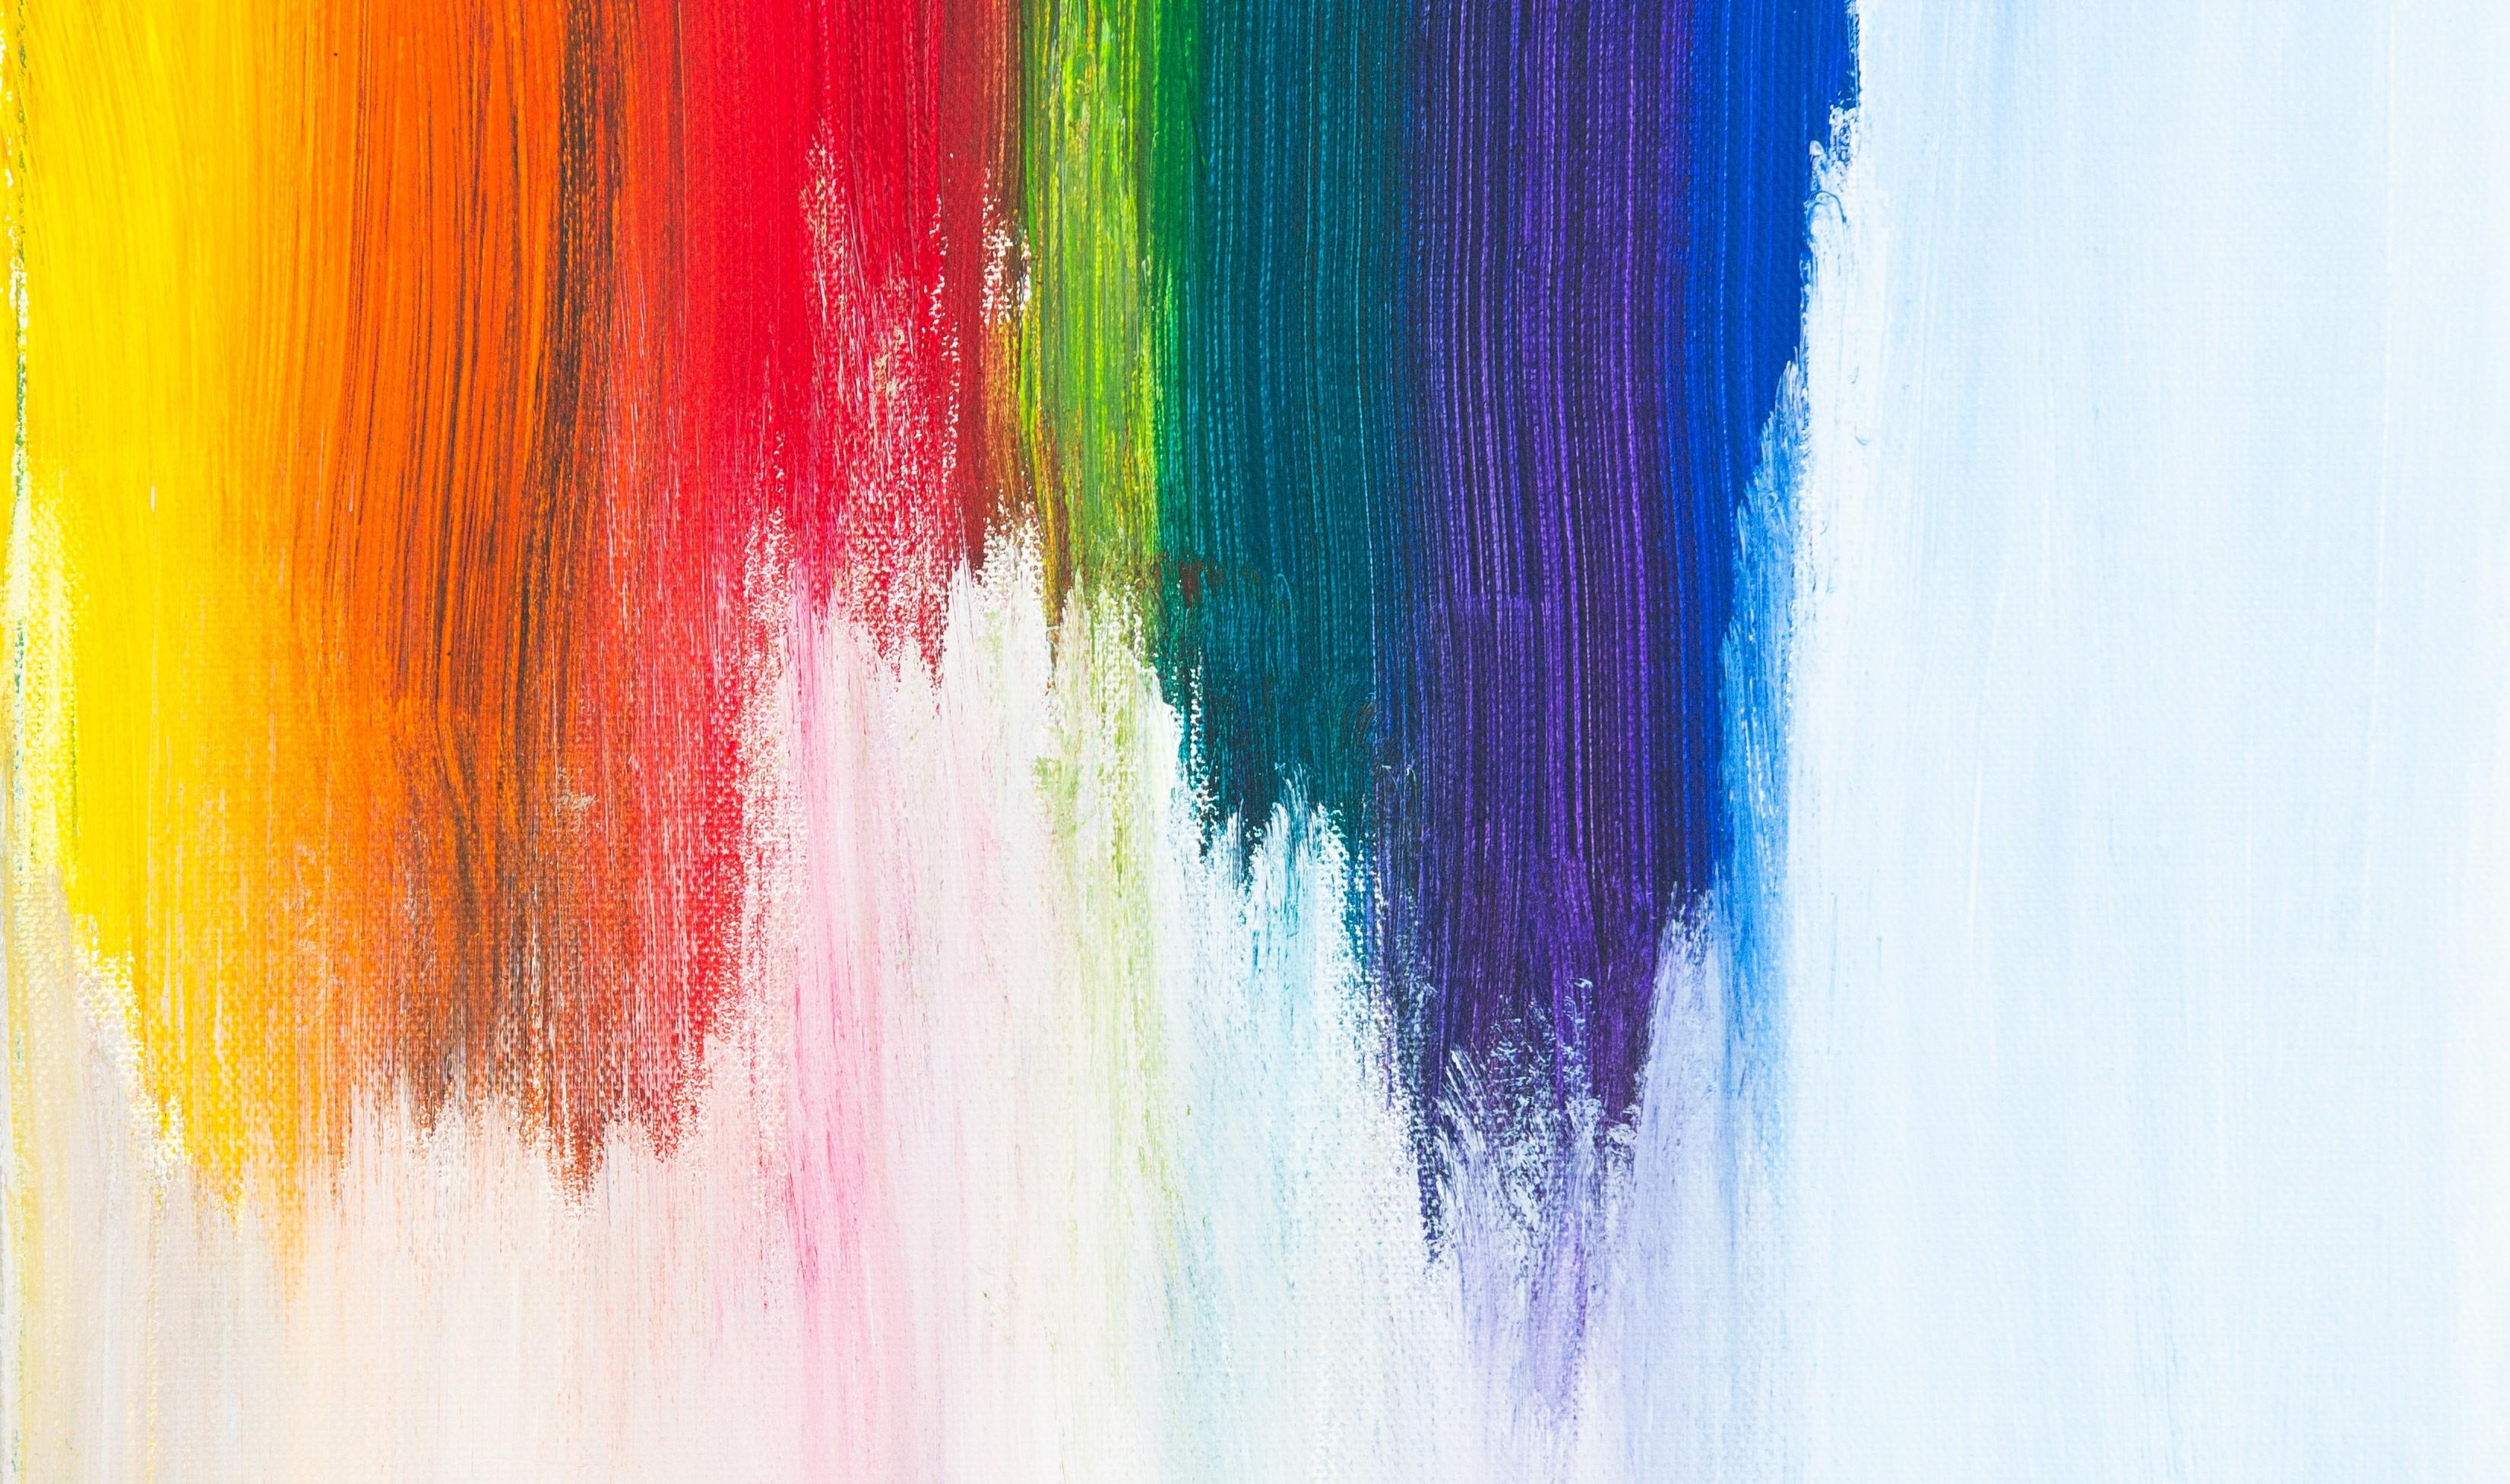 stripes of yellow, red, green, blue and purple paint on a white background